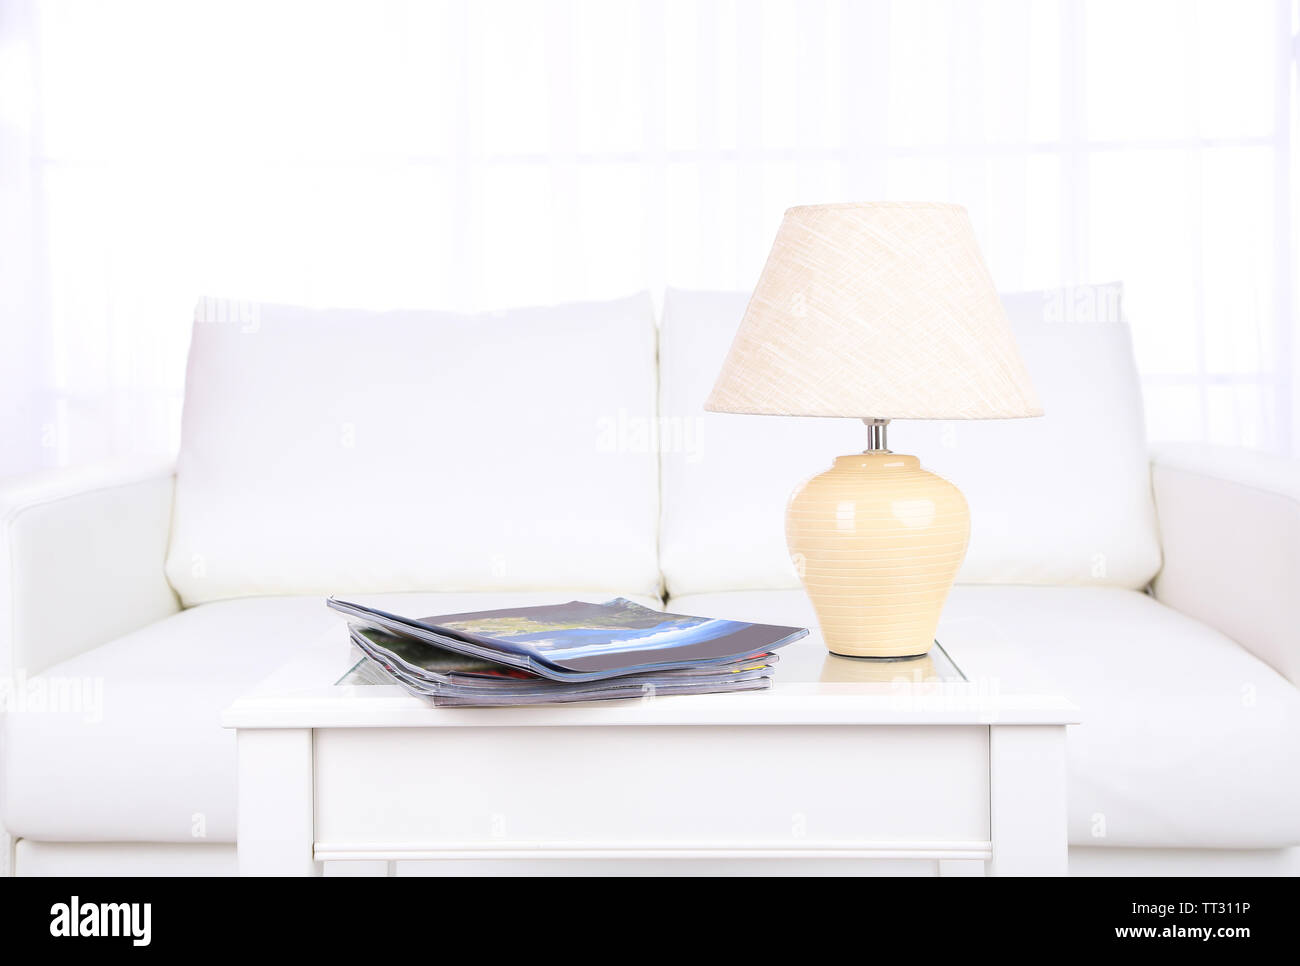 Magazines and lamp on coffee table in room - Stock Image